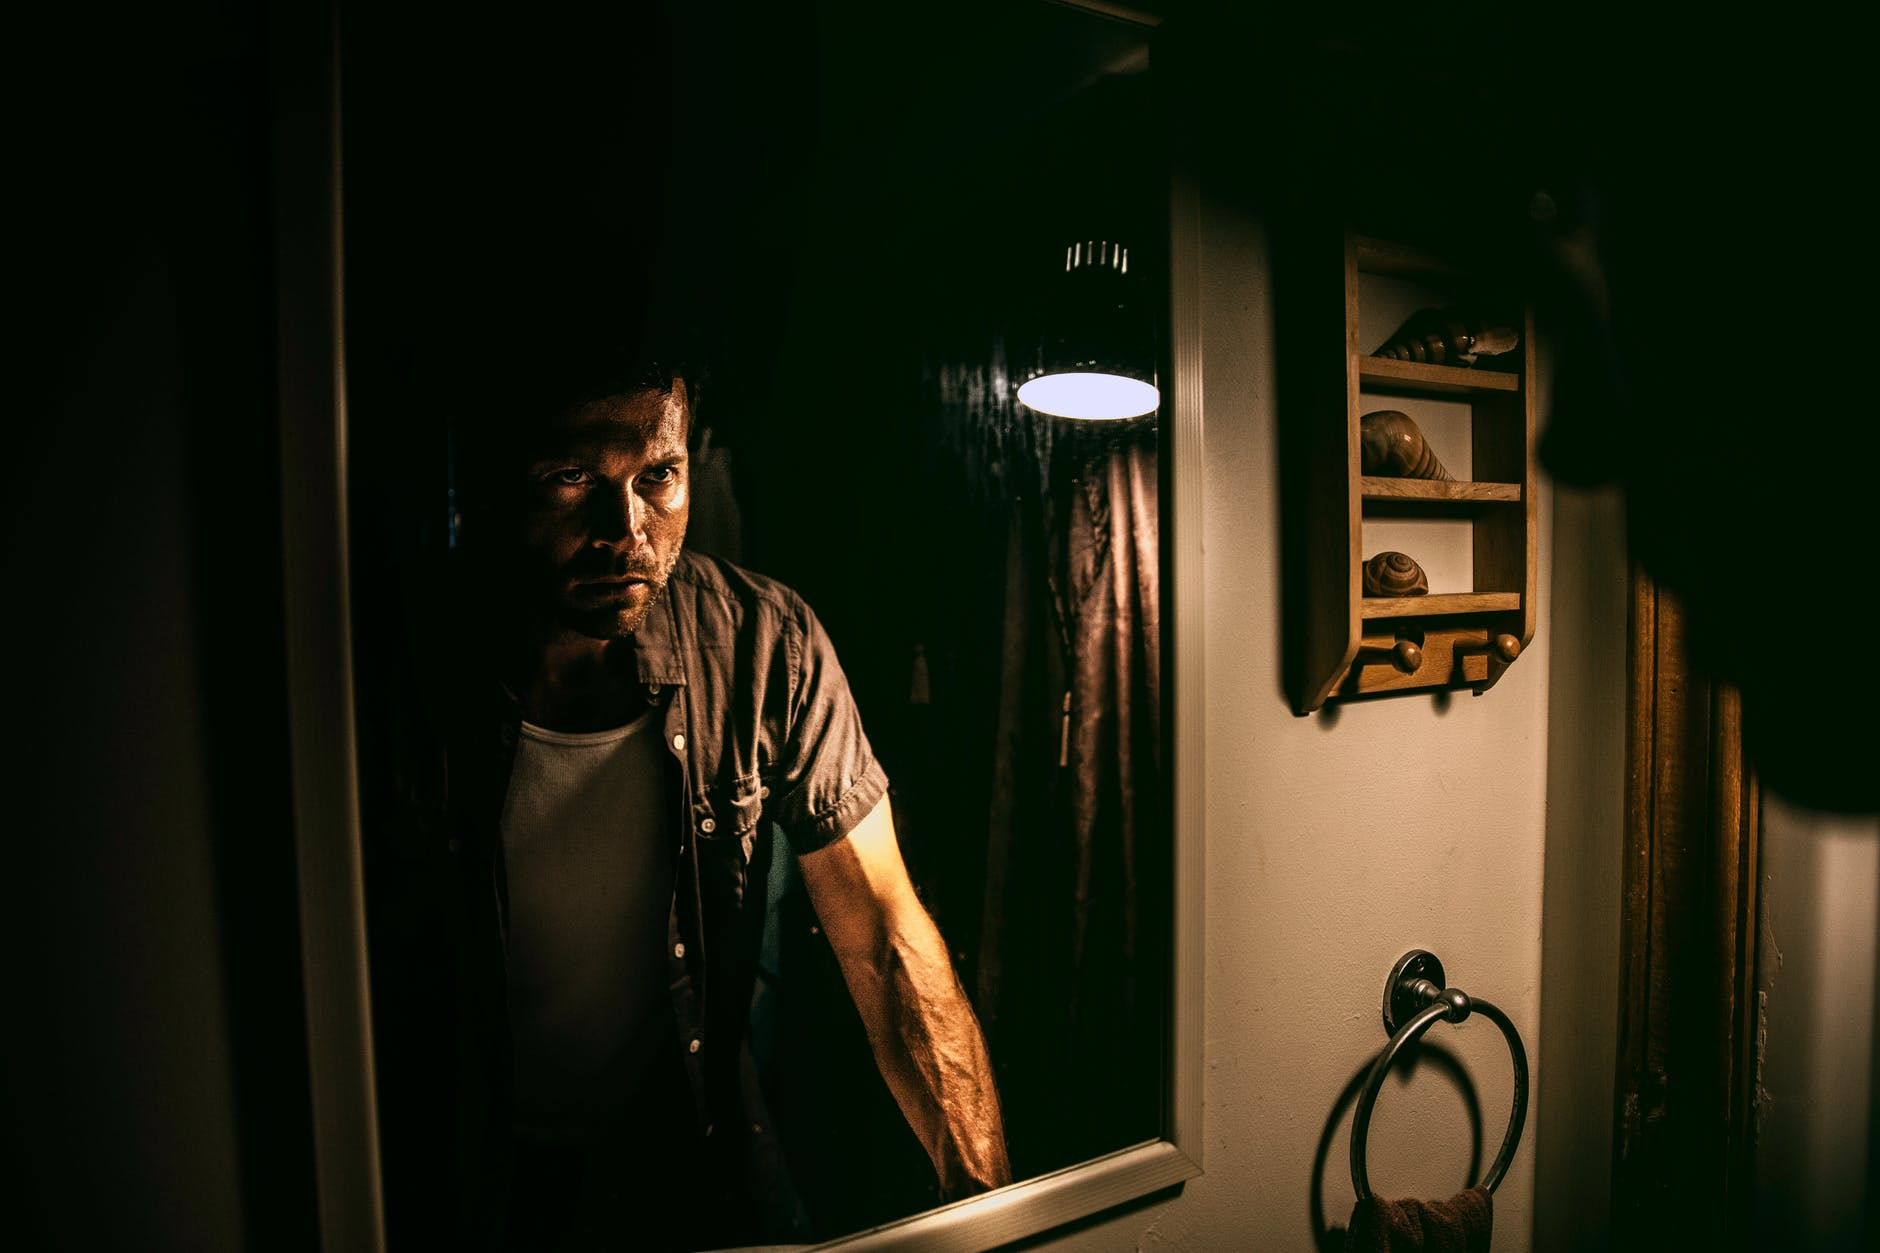 man standing in front of mirror